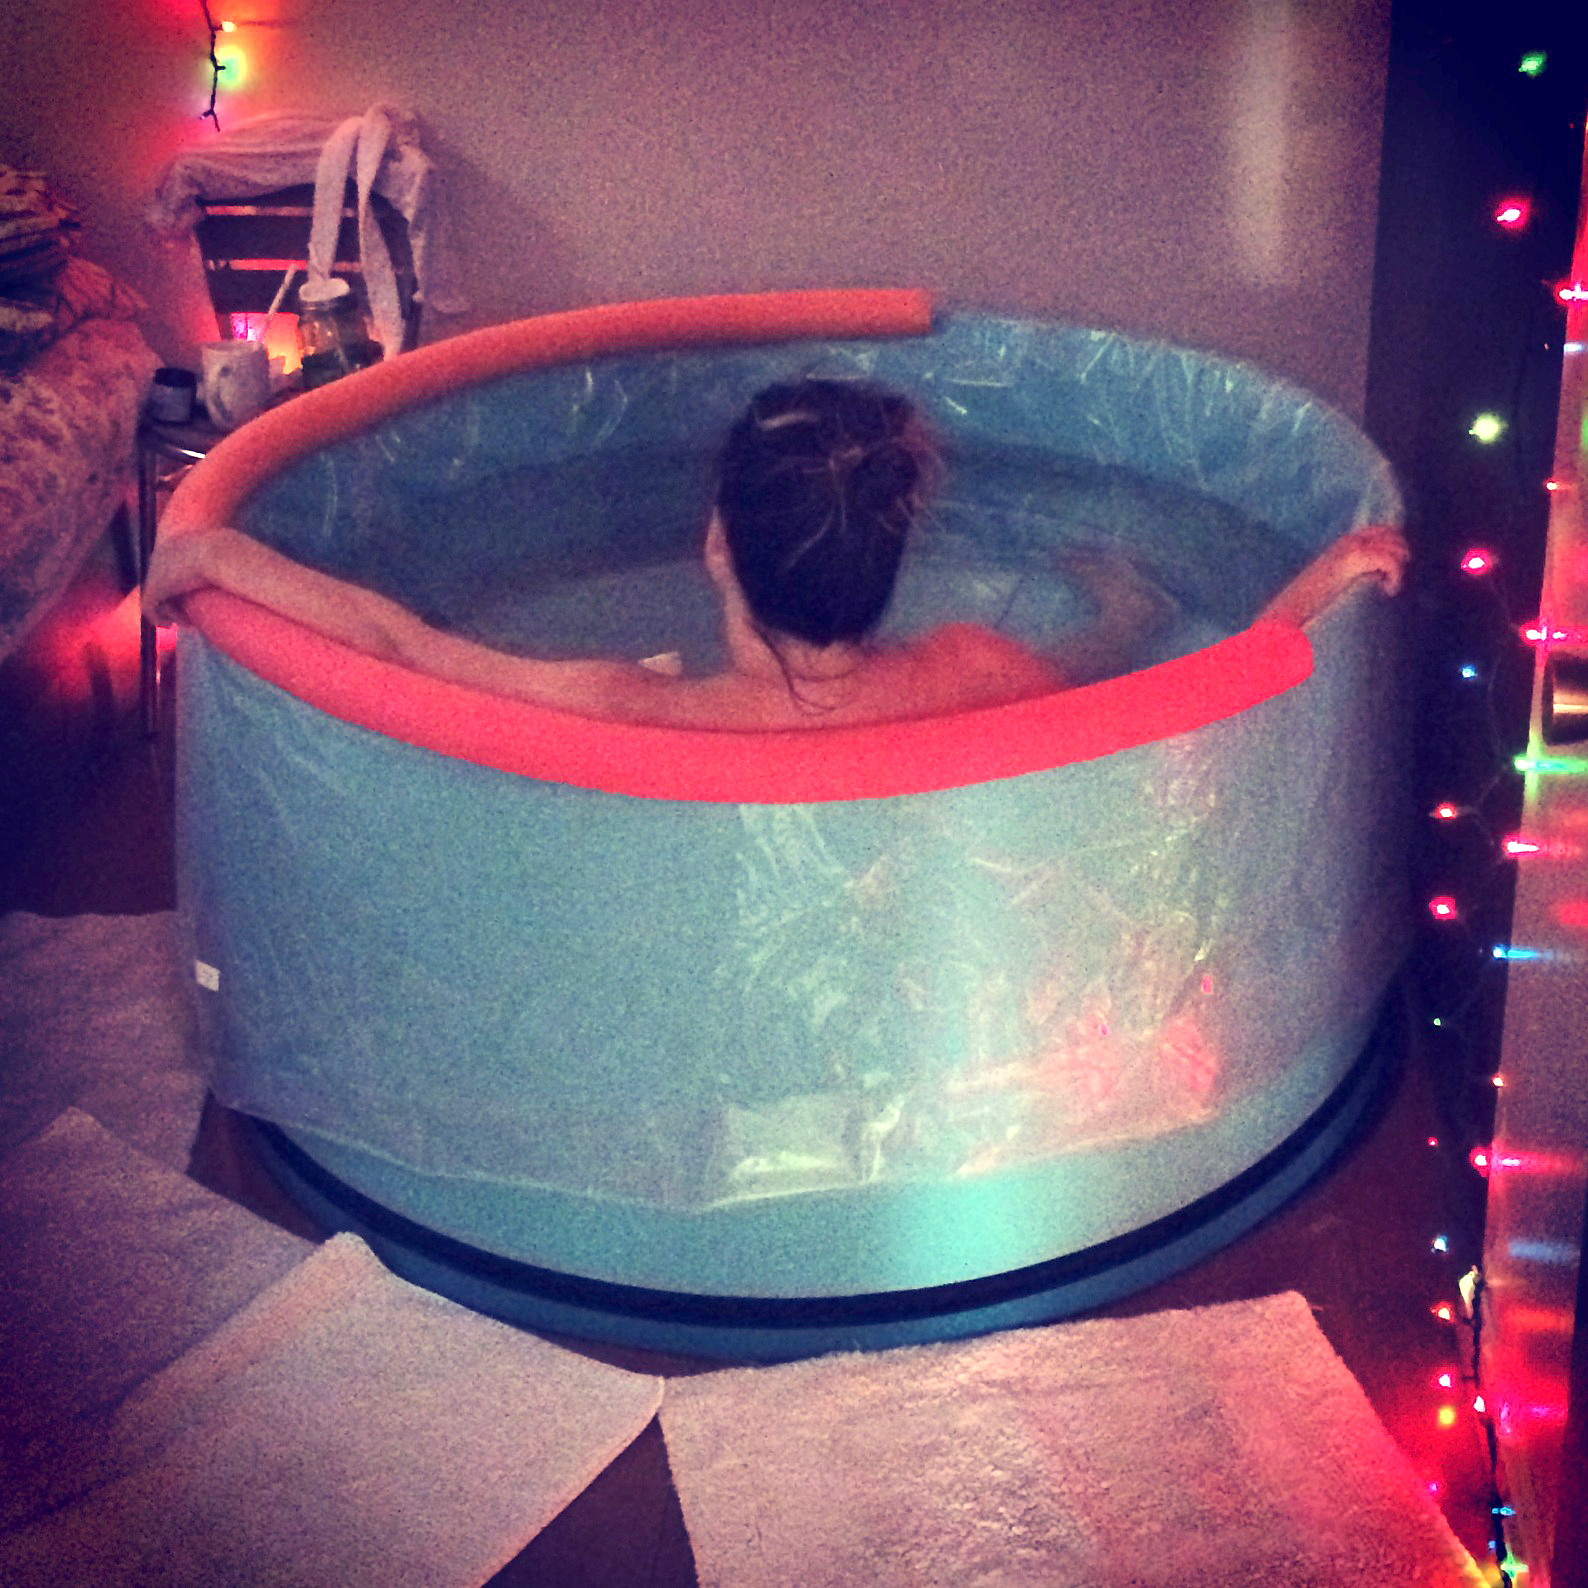 Reserve a Tub - Tub Rental Contract - Awakenings Birth Services and ...